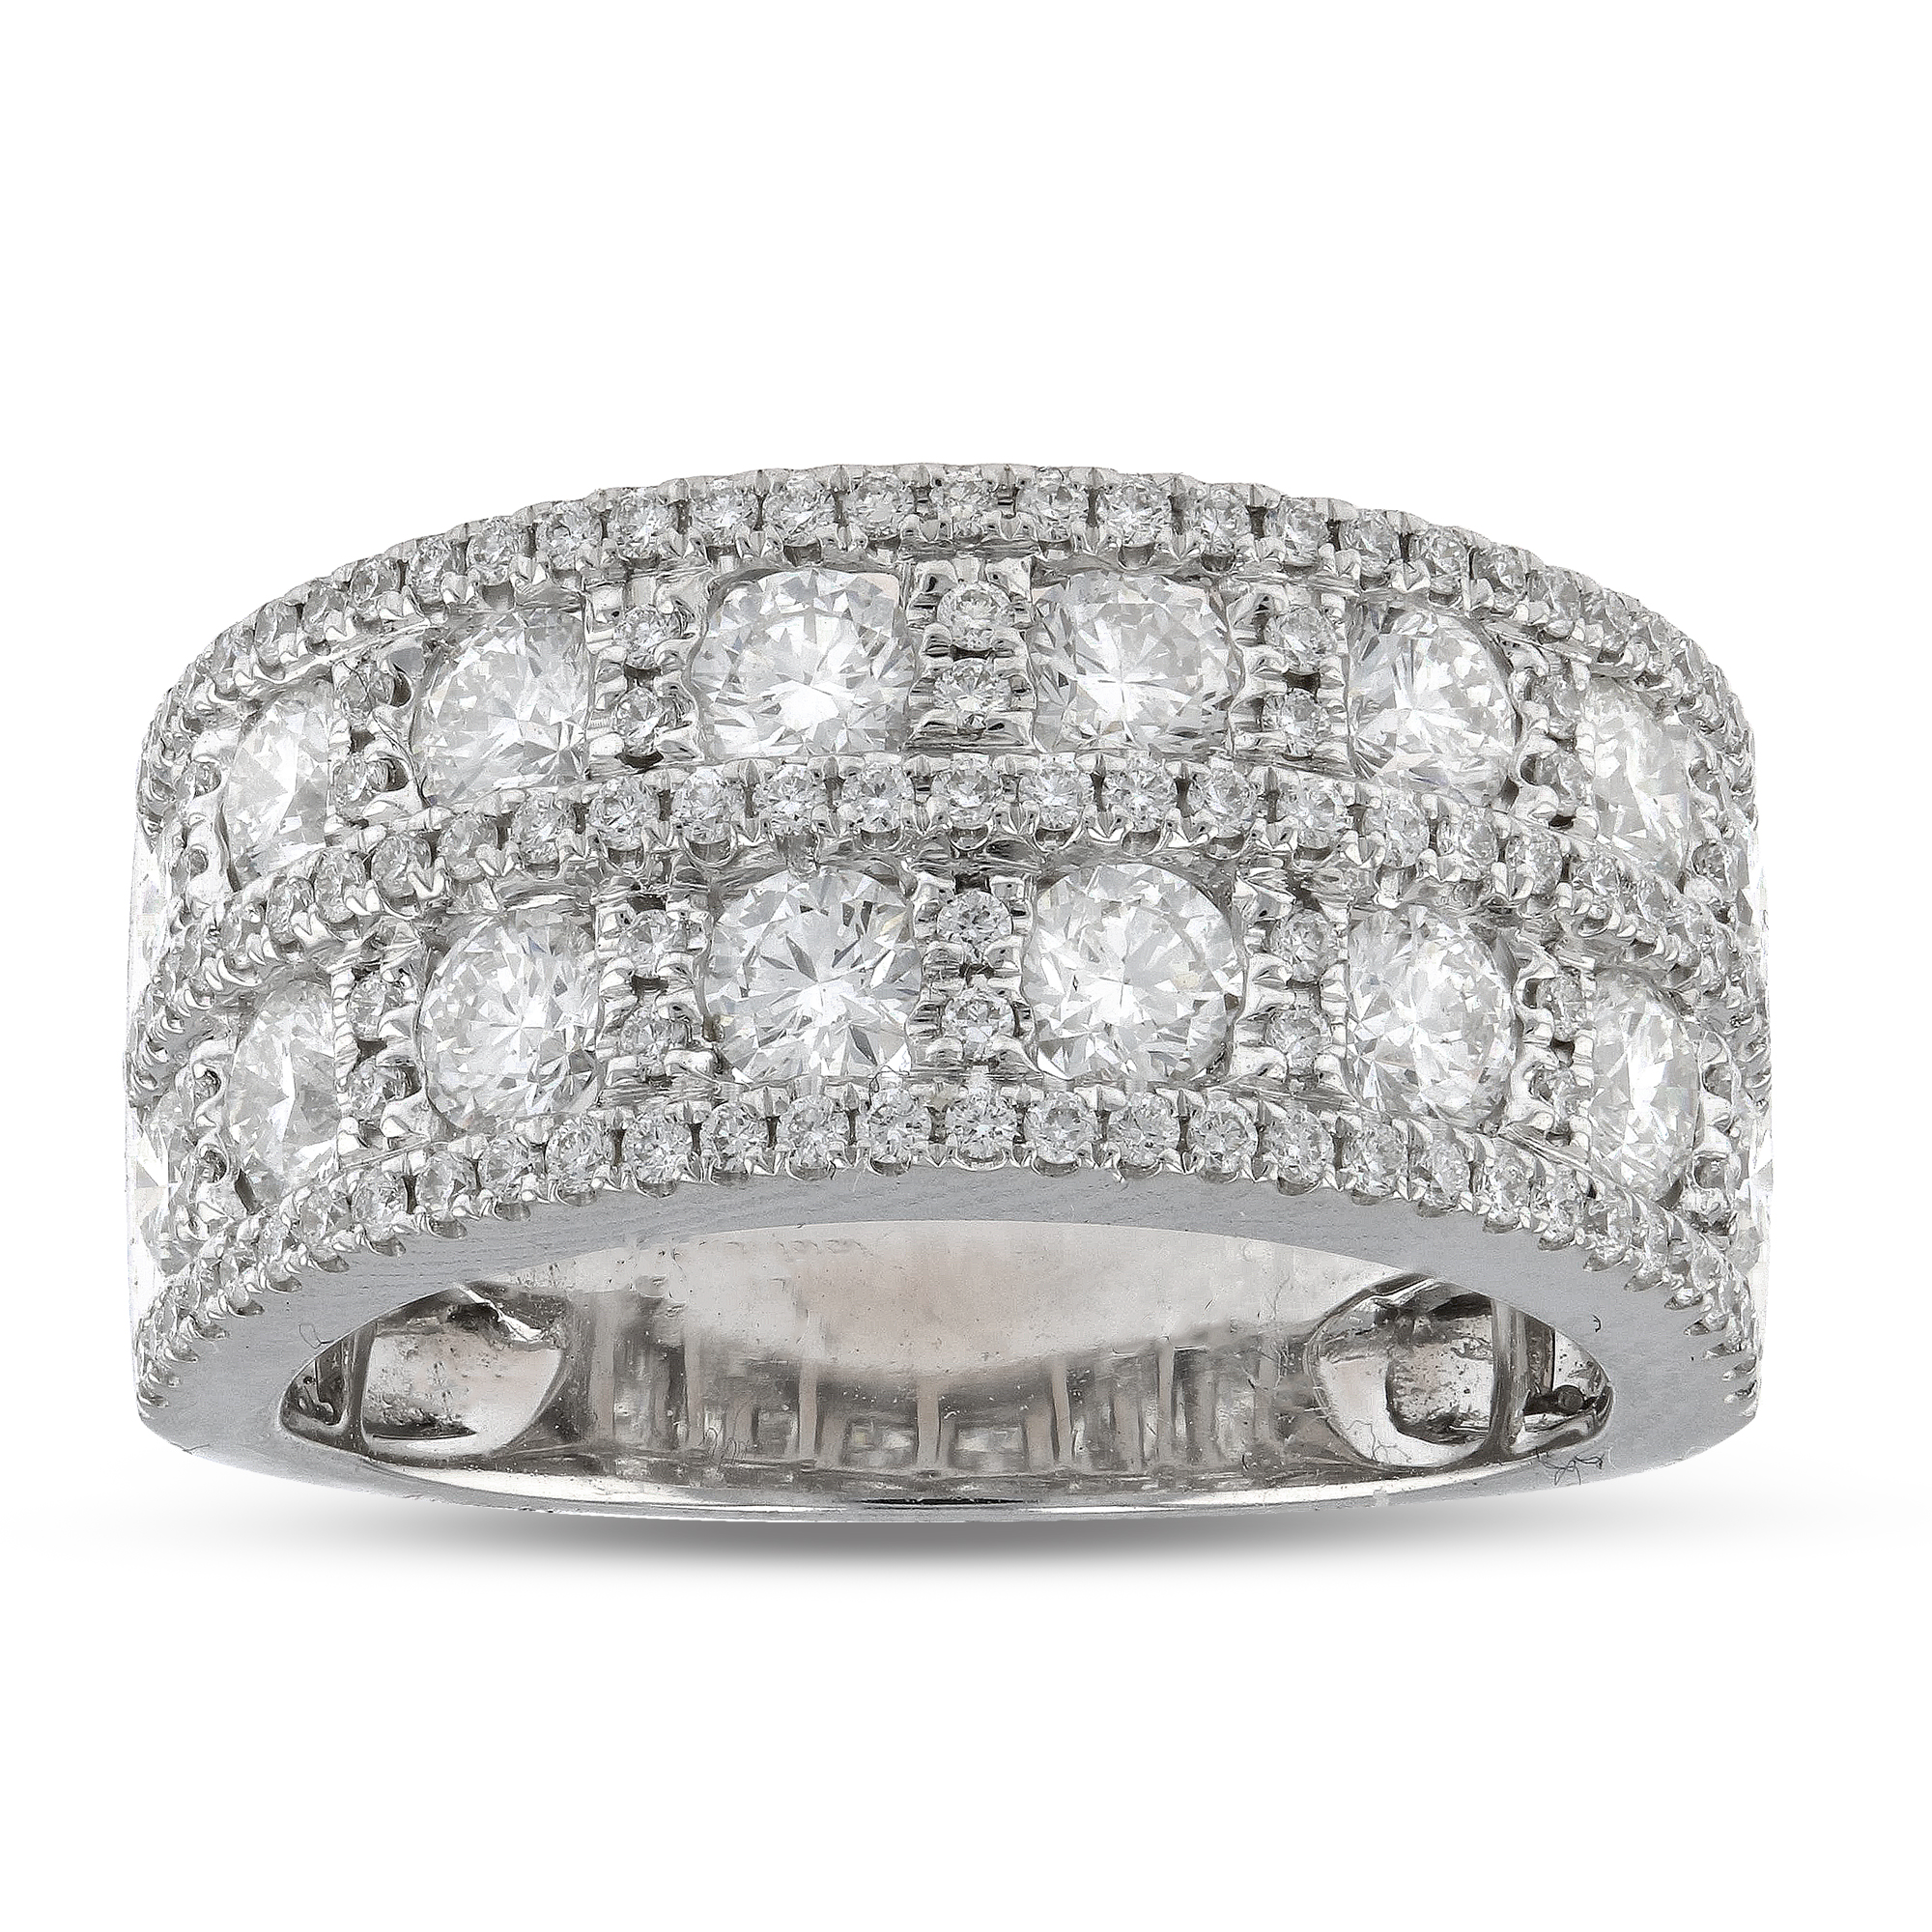 View 2.28ctw Diamond Fashion Band in 18k White Gold